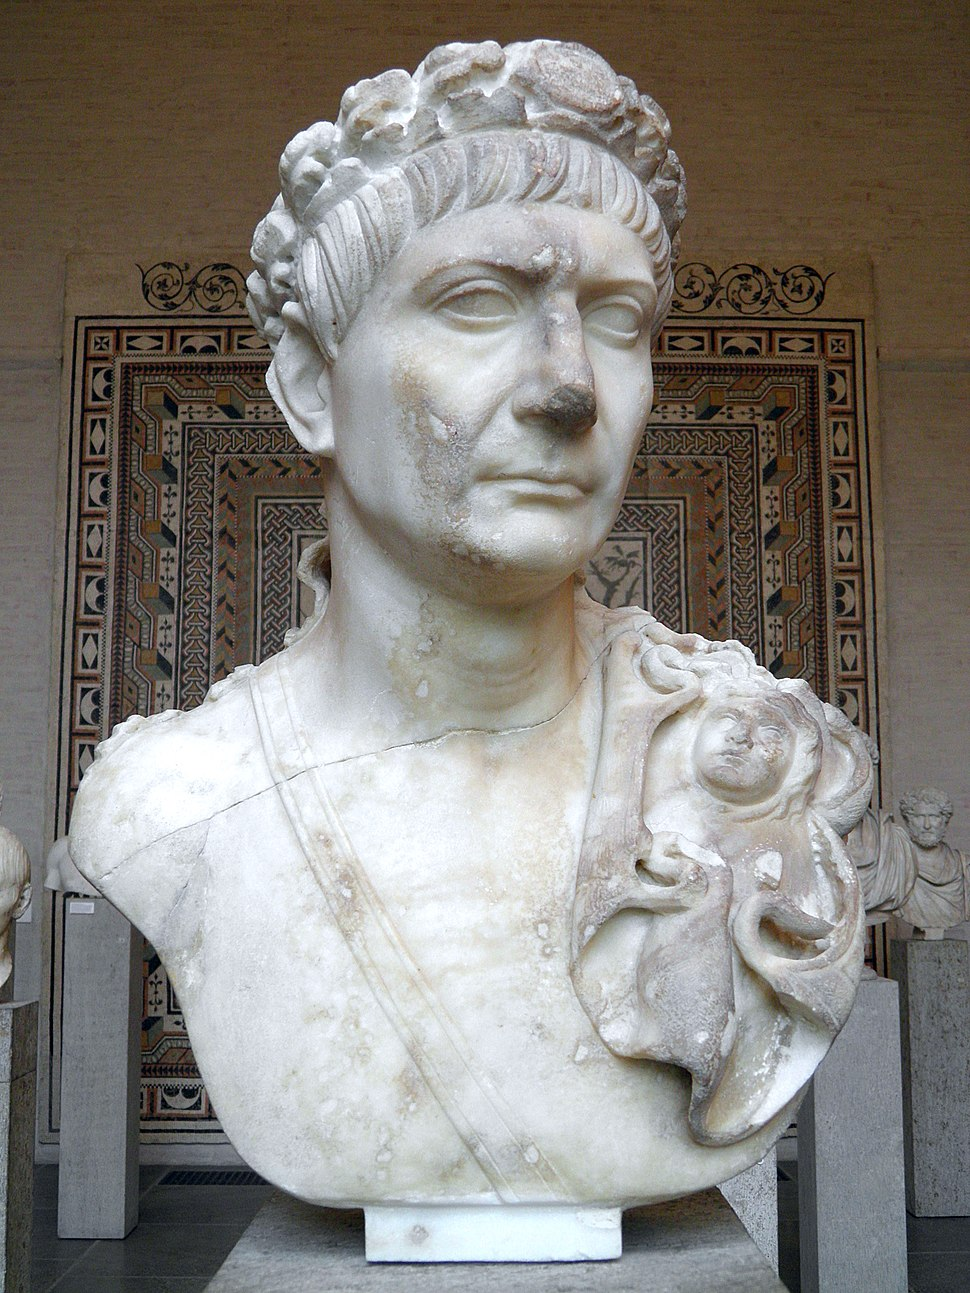 Bust of Trajan wearing the Civic Crown with medallion, a sword belt and the aegis (as symbol of divine power and world domination), Glyptothek, Munich (9014436520)